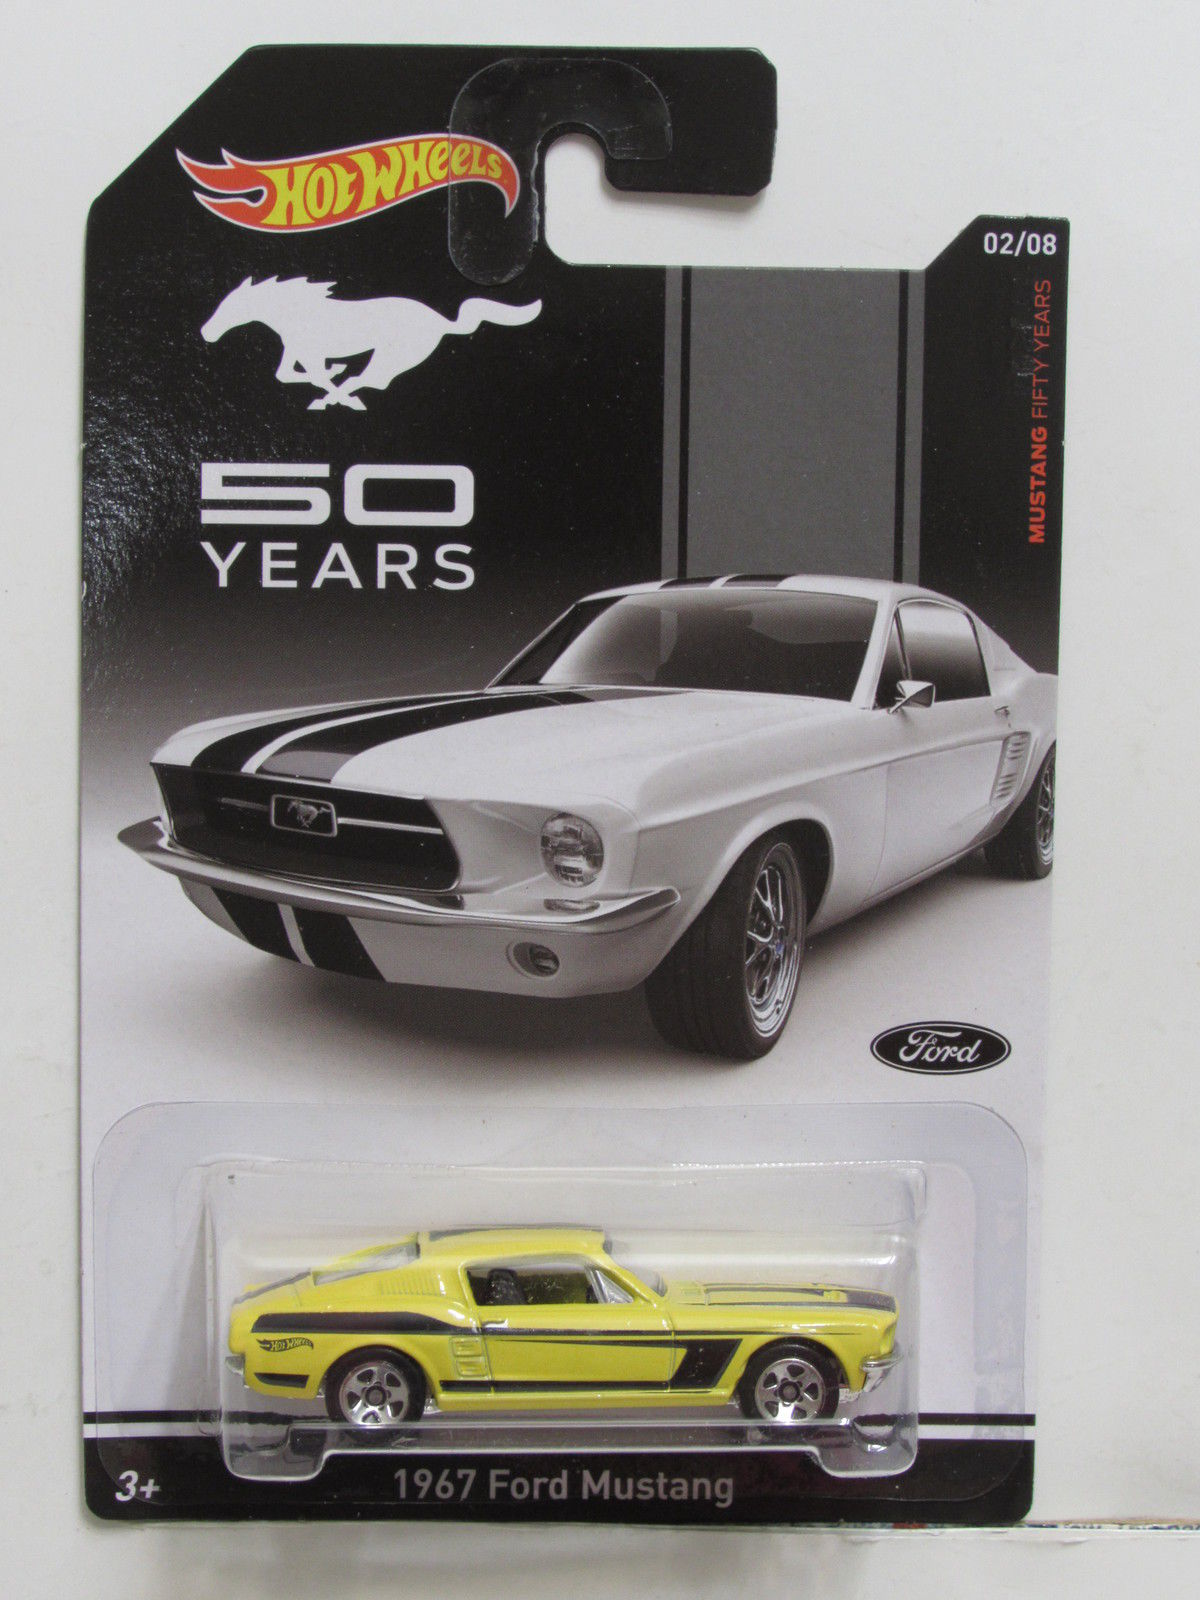 HOT WHEELS MUSTANG FIFTY YEARS TO YEARS 1967 FORD MUSTANG